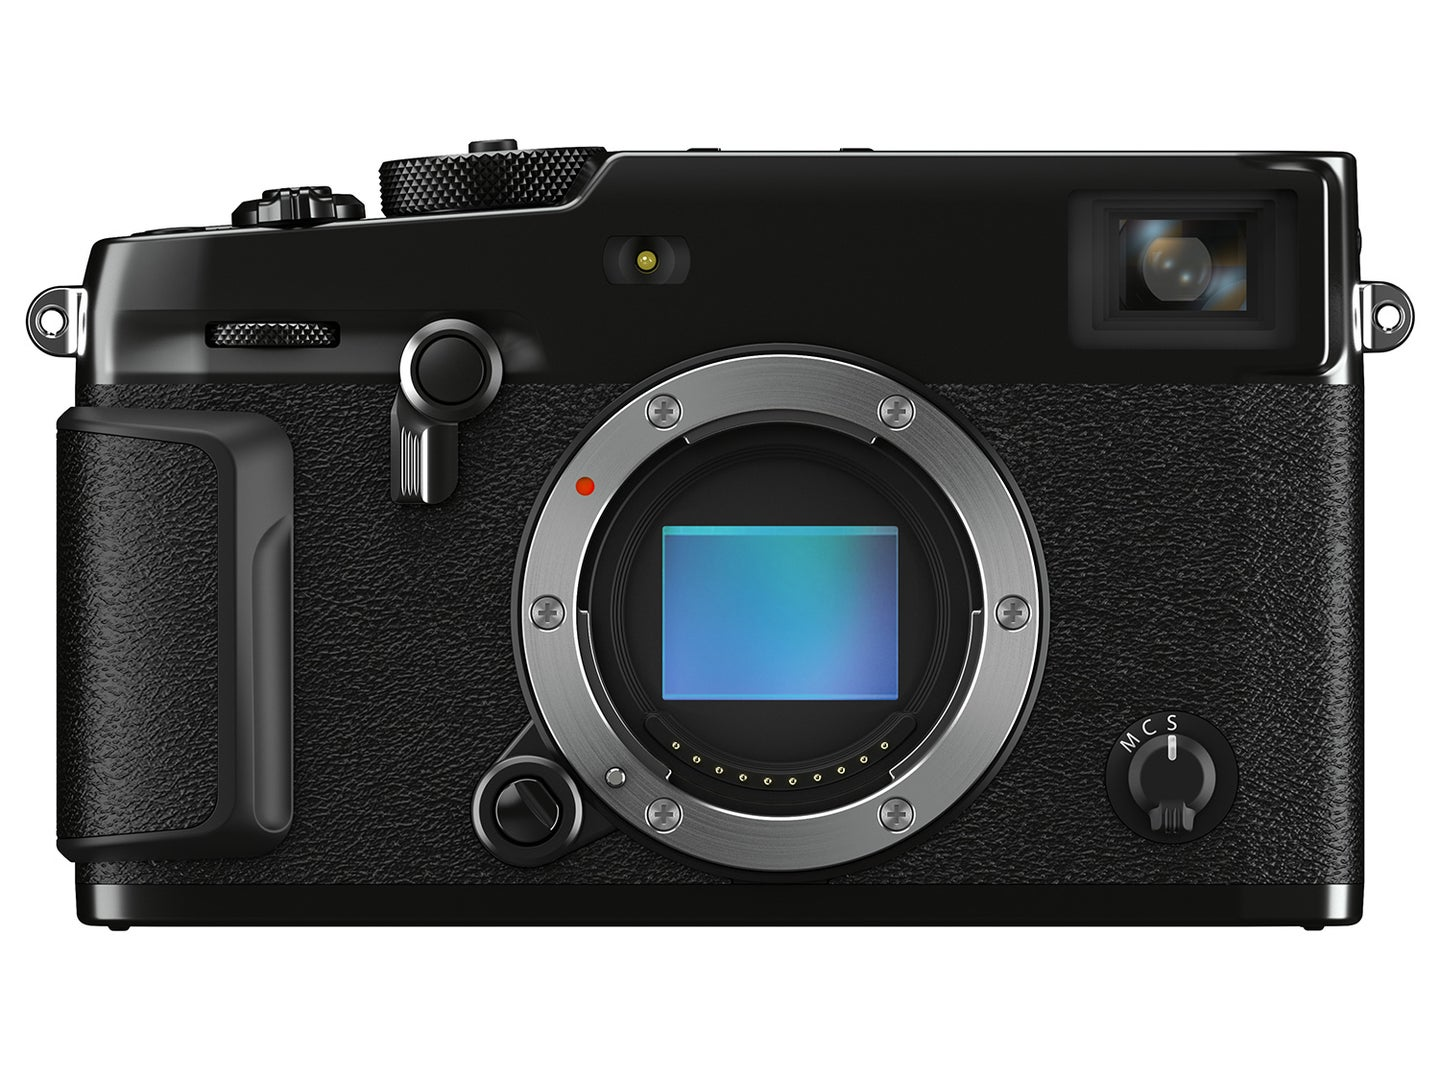 The Fujifilm X-Pro3 wants to change the way you think about digital photography